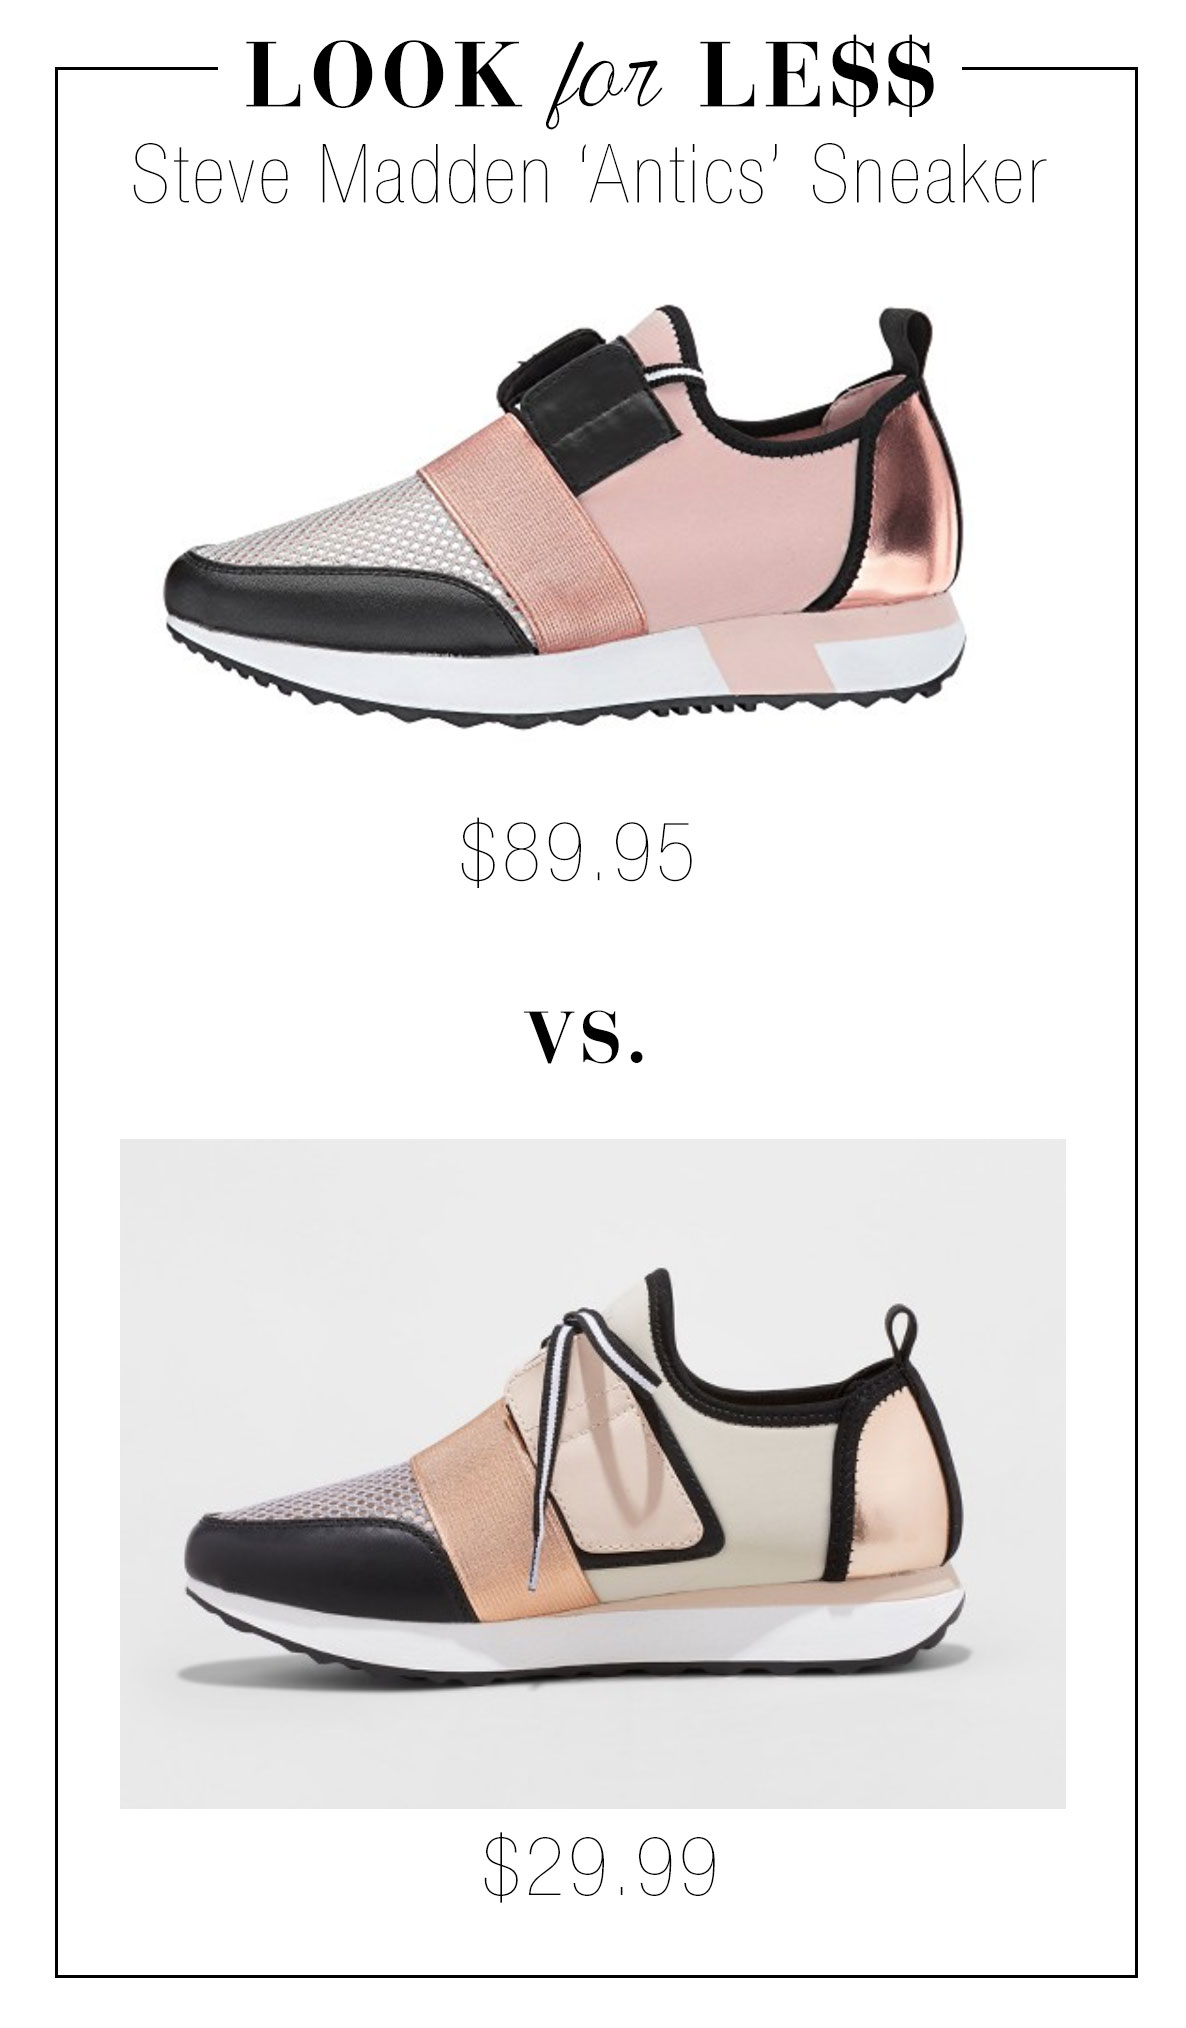 Look for Less: Steve Madden Antics Sneakers